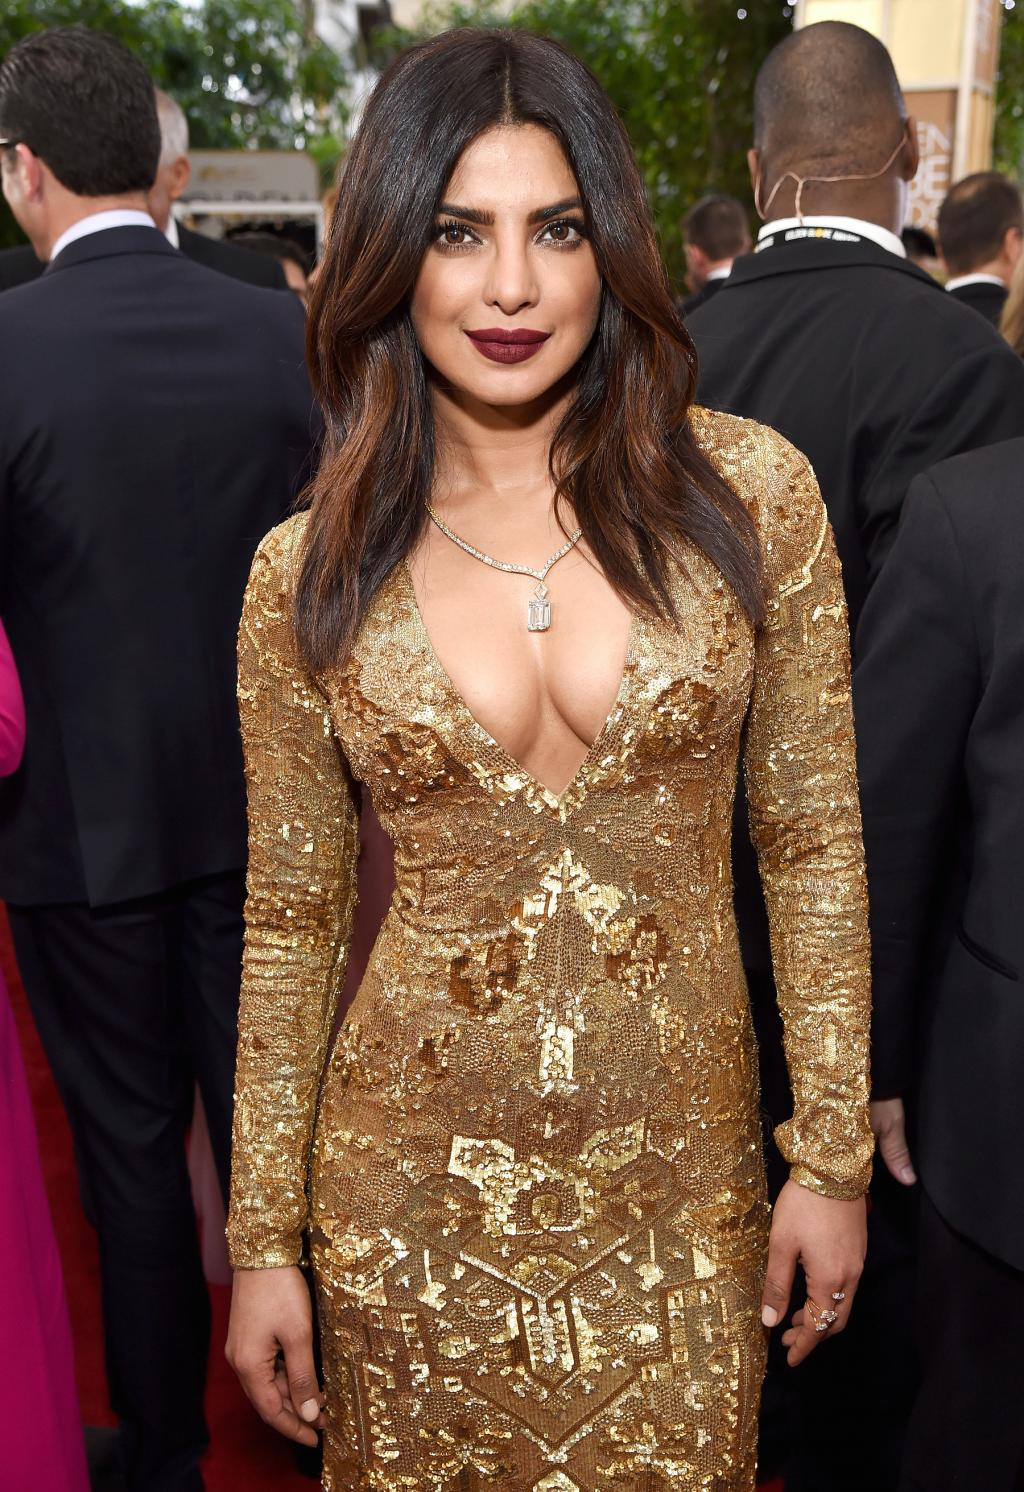 Priyanka Chopra Thanks Fans for Their Support After Fall:       'I Will Be Ok